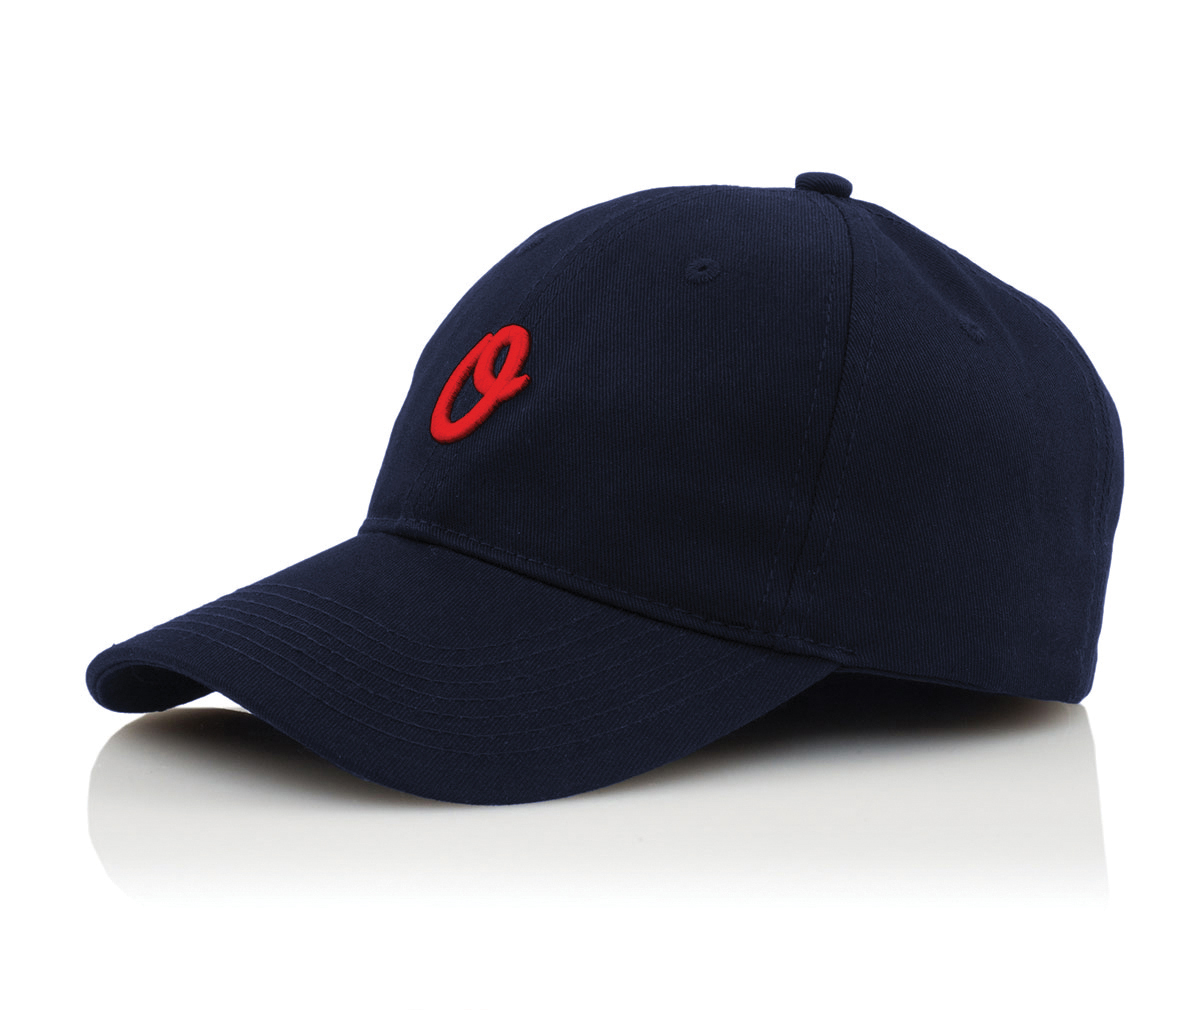 Official Cap Miles Olo Sport Navy 6 Panel Unstructured Strapback Skateboard Hat